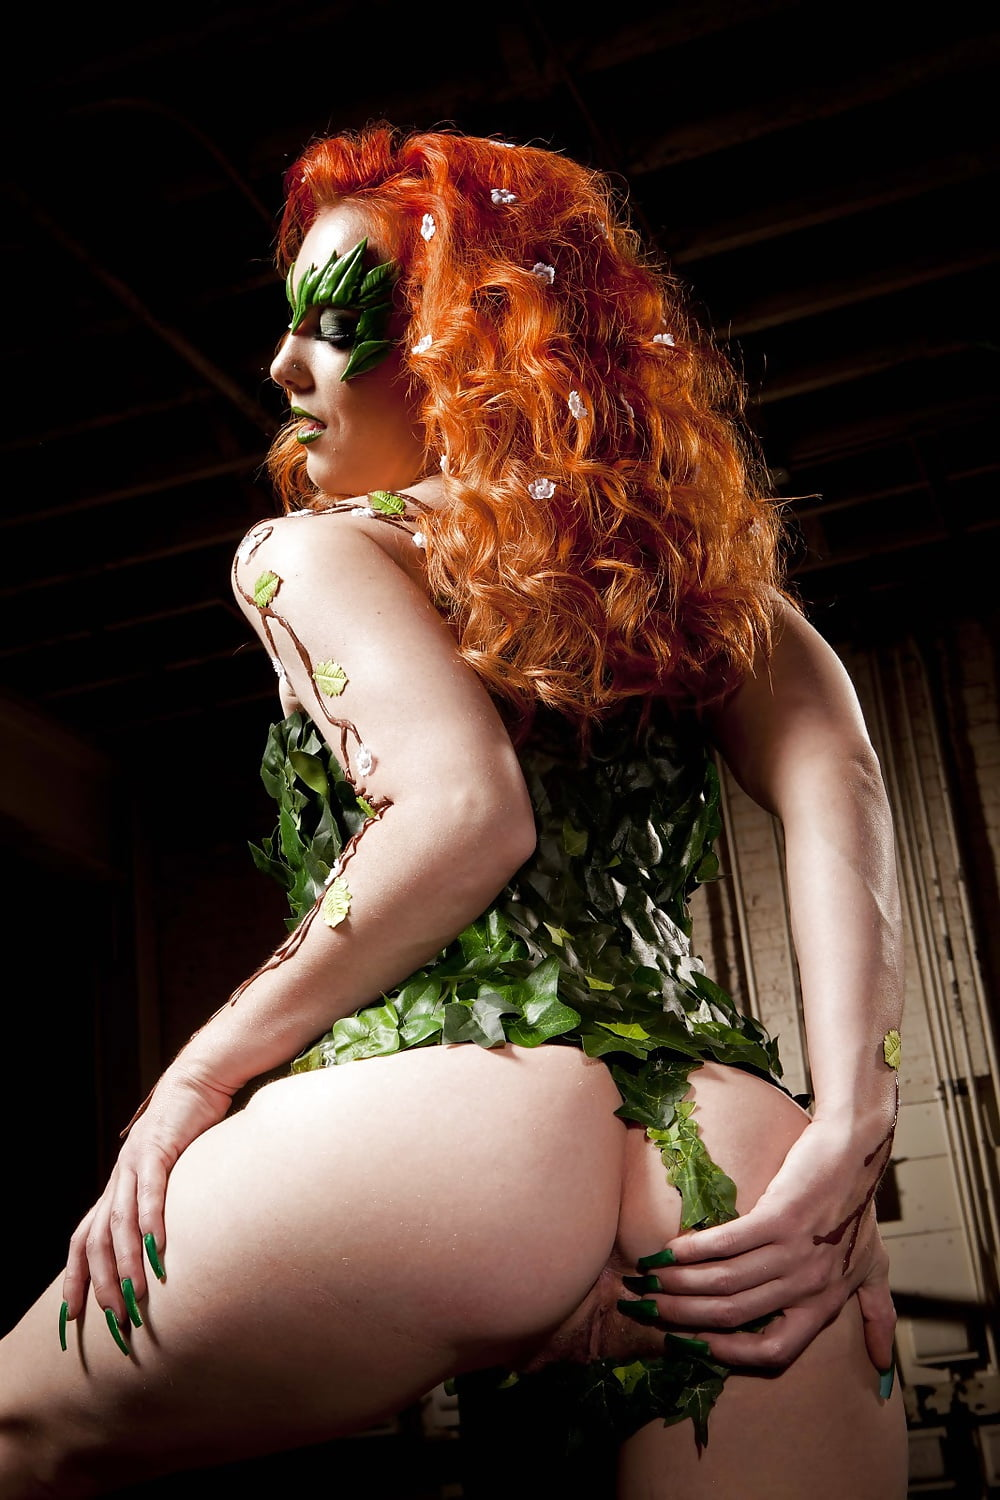 Pin On Poison Ivy